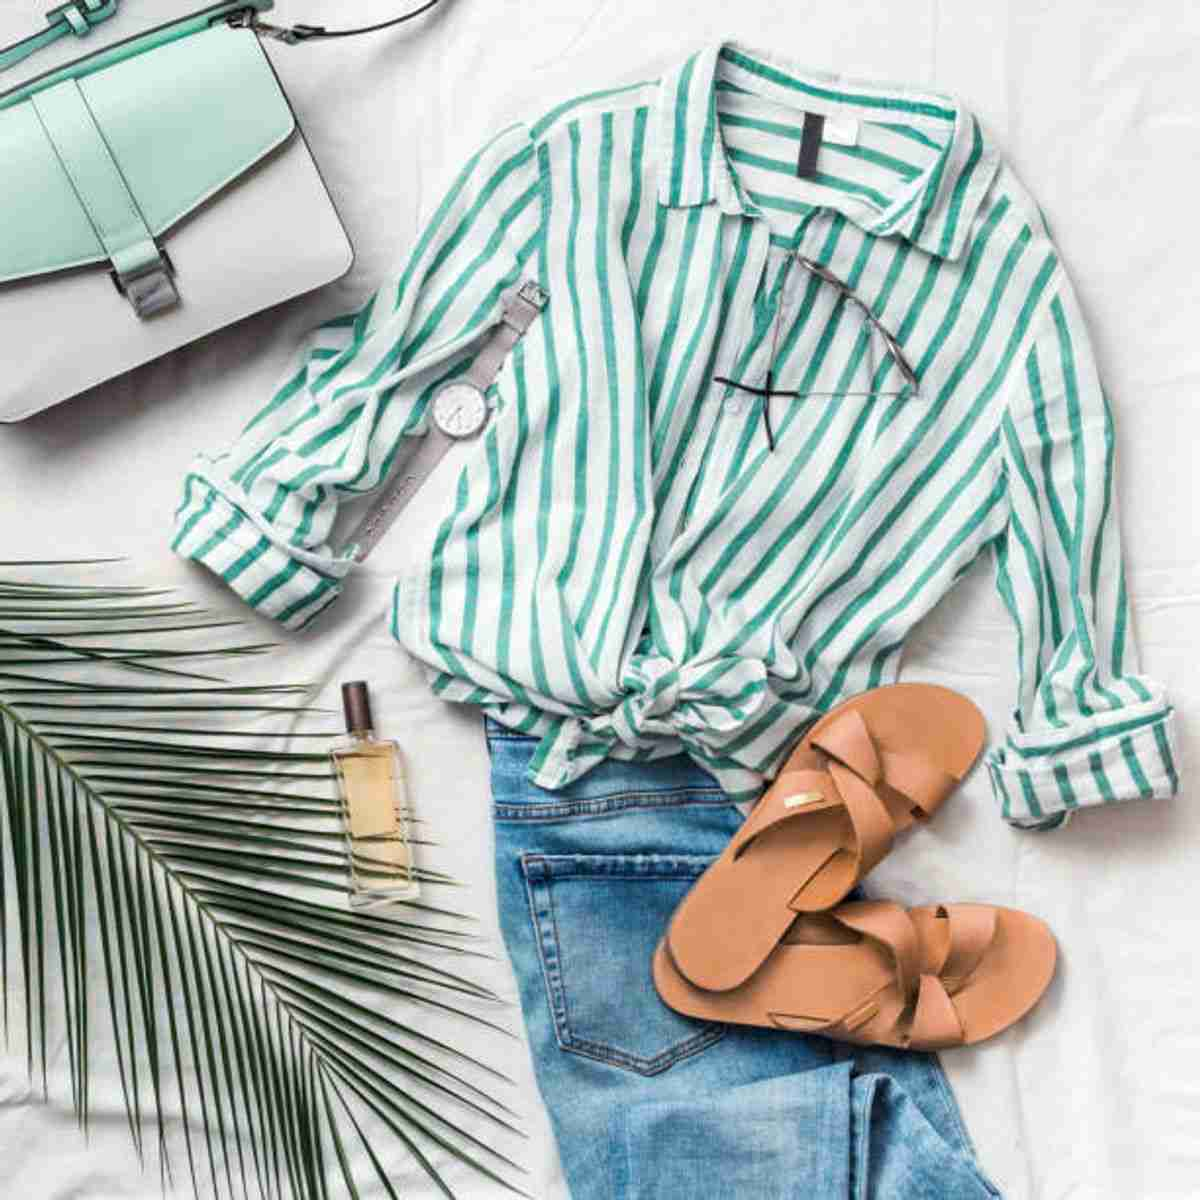 How To Sell On Shein